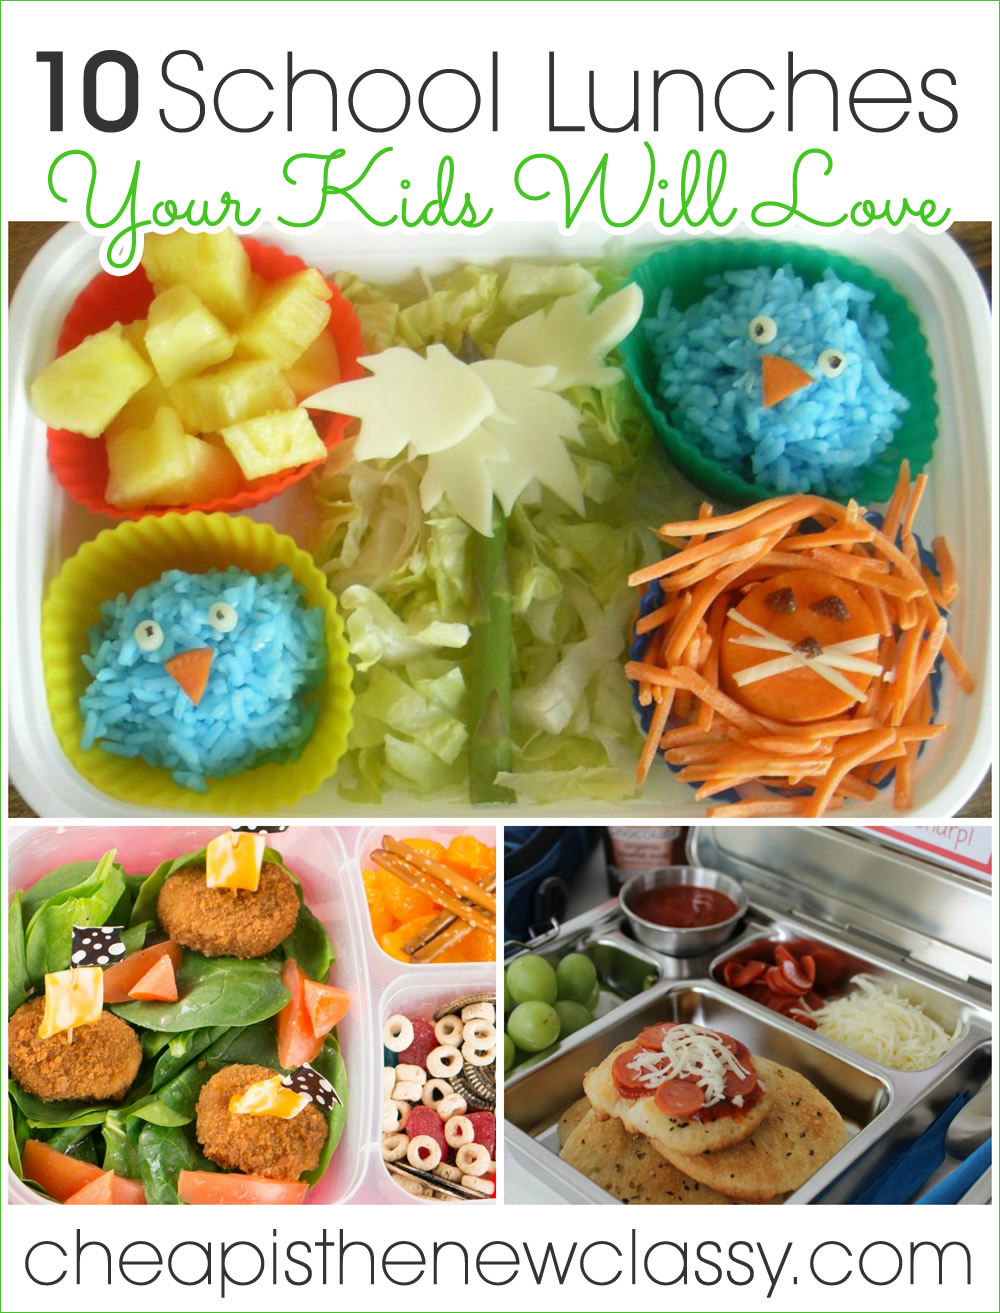 10 School Lunchbox Ideas Your Kid Will Love | Cheap Is The New Classy